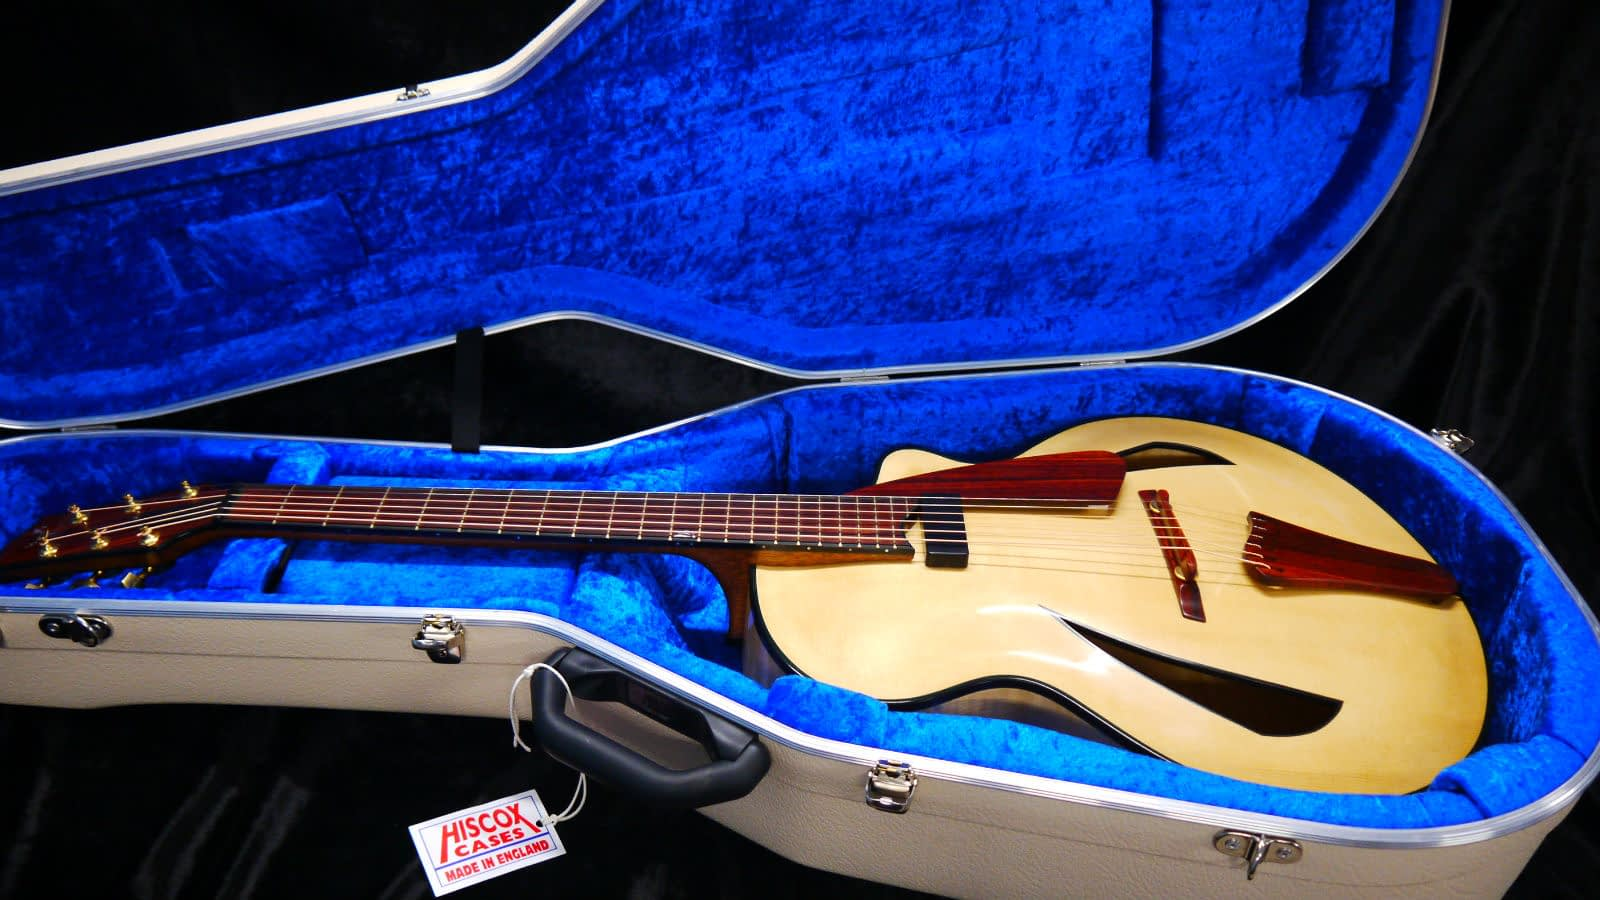 Handmade archtop cocobolo details ivory blue hiscox case